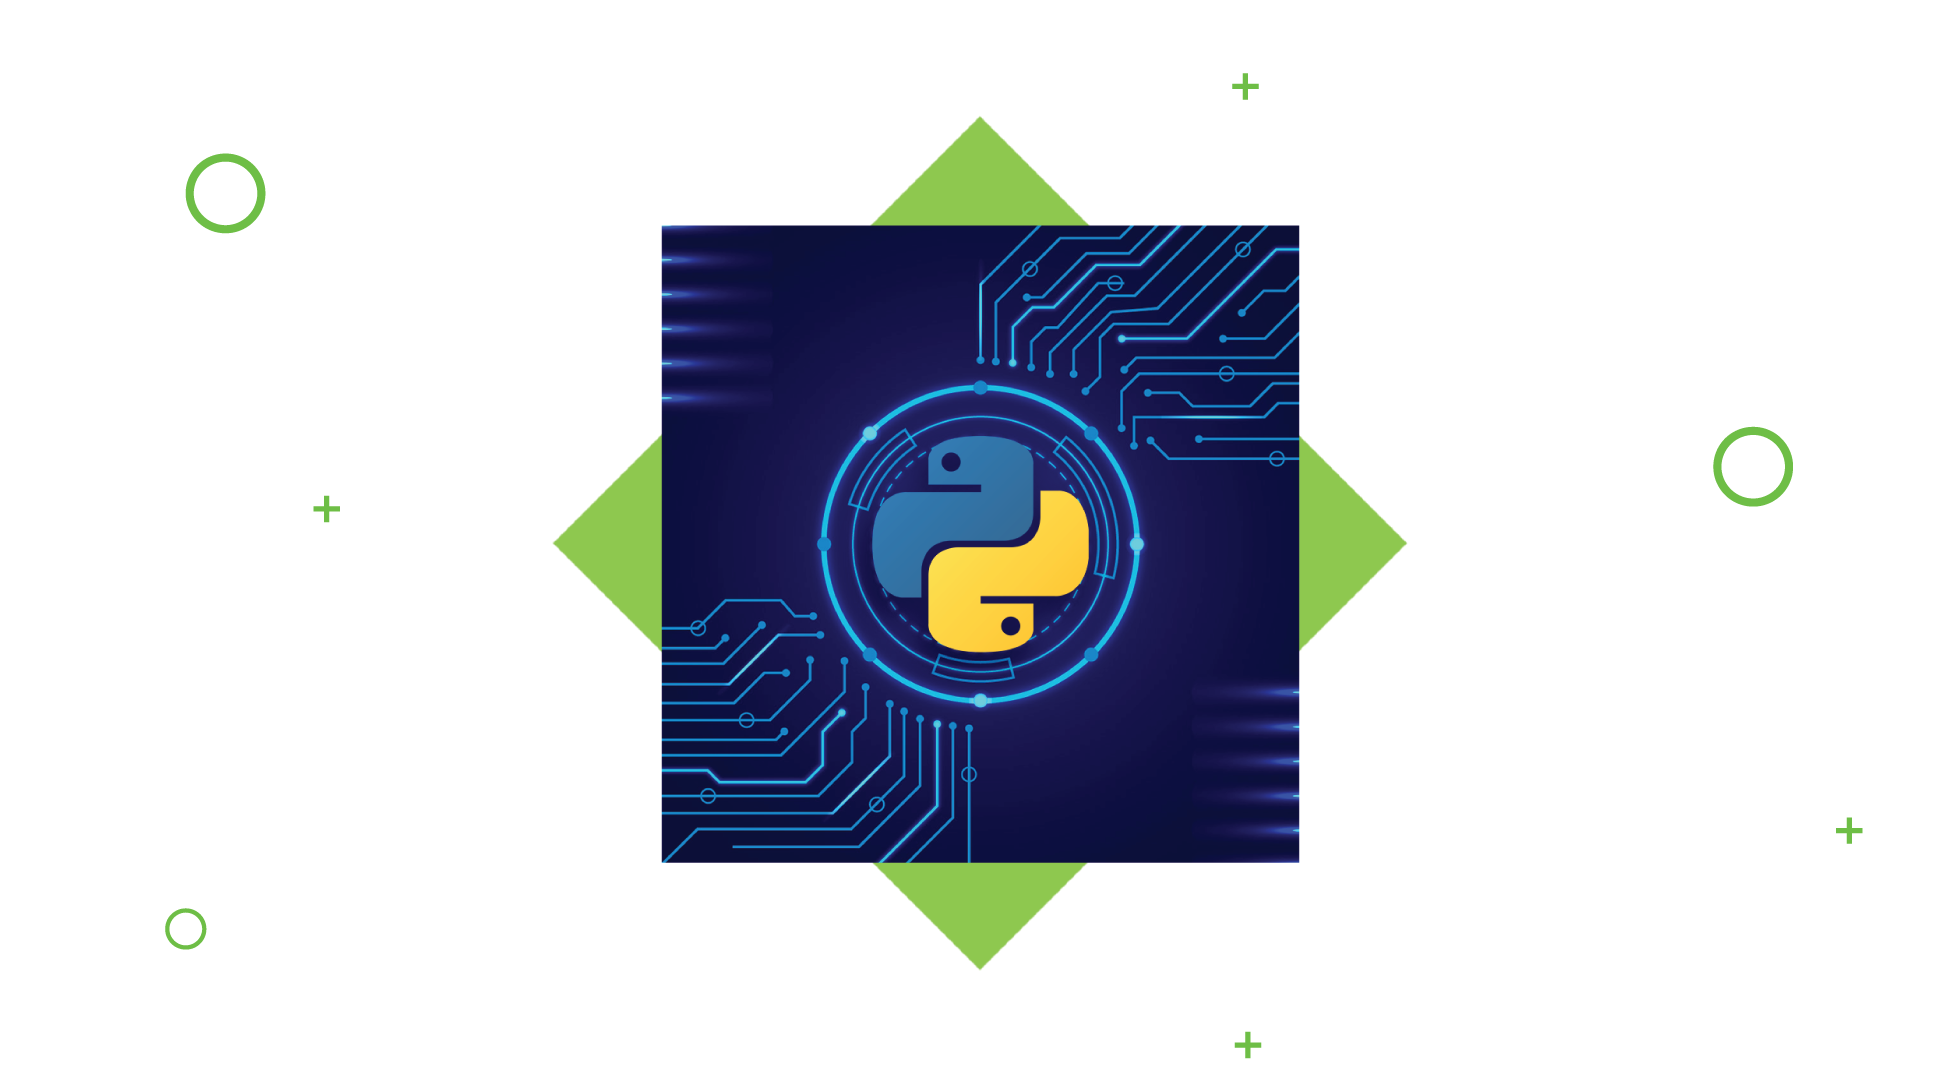 Reasons Why Python is Good for AI and ML